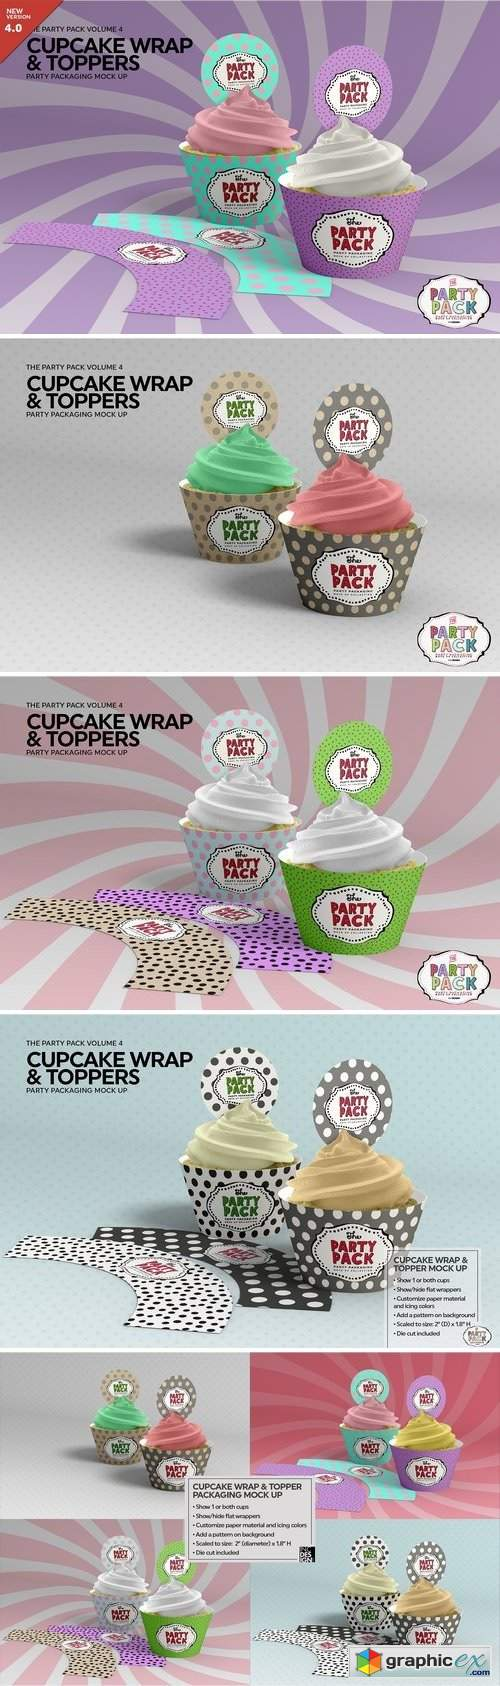 Cupcake Wrap and Topper Mock Up